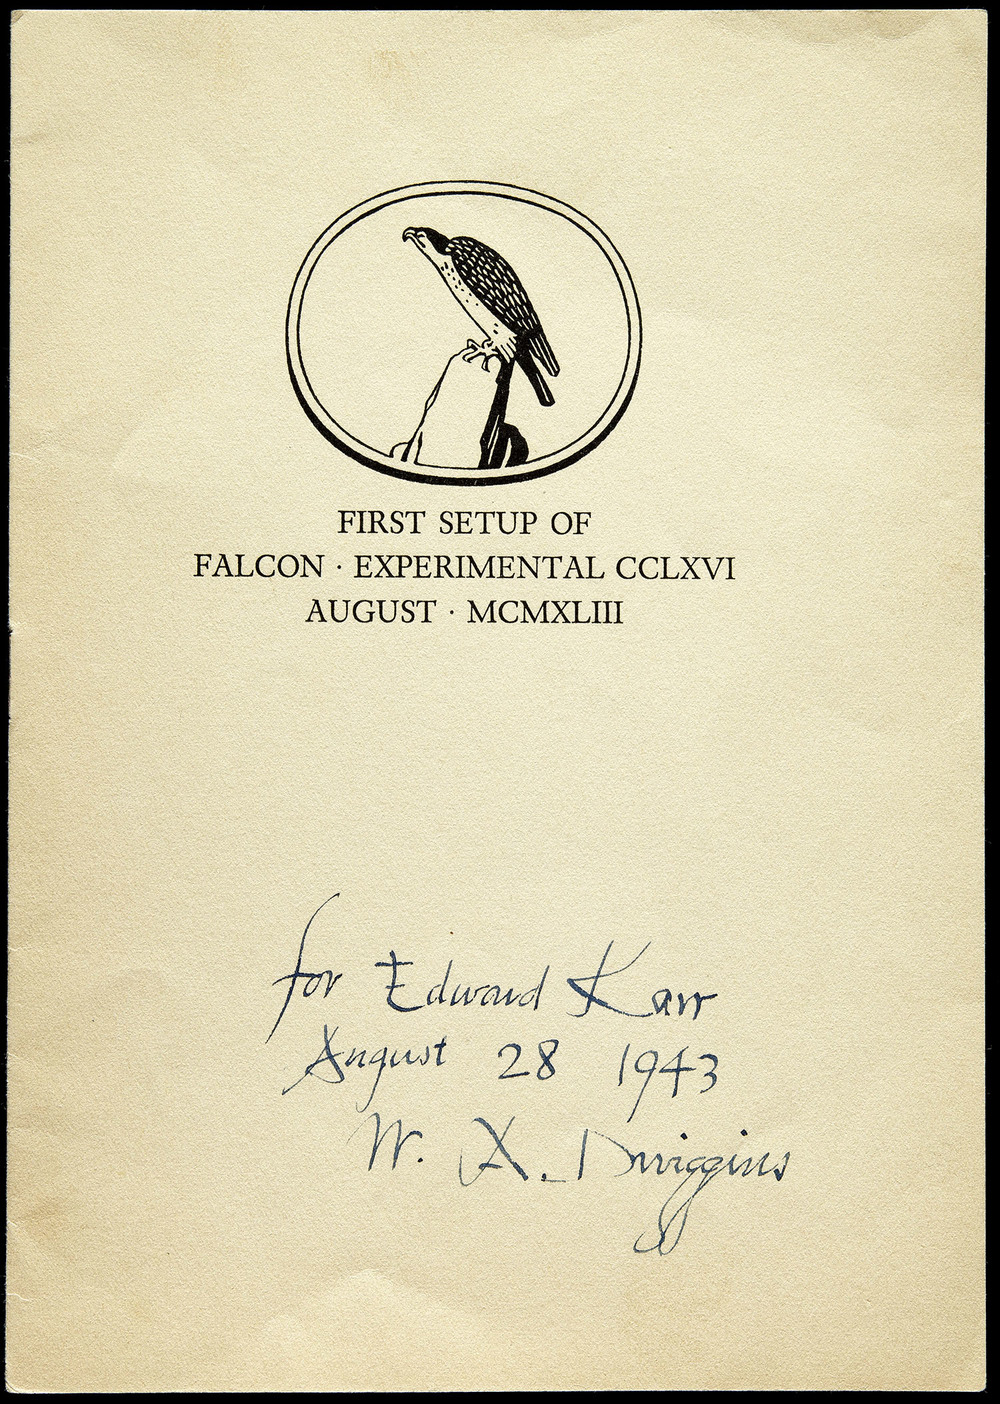 First setup booklet of  Falcon  experimental, Mergenthaler Linotype, Brooklyn, 1943, 14 x 19.5 cm